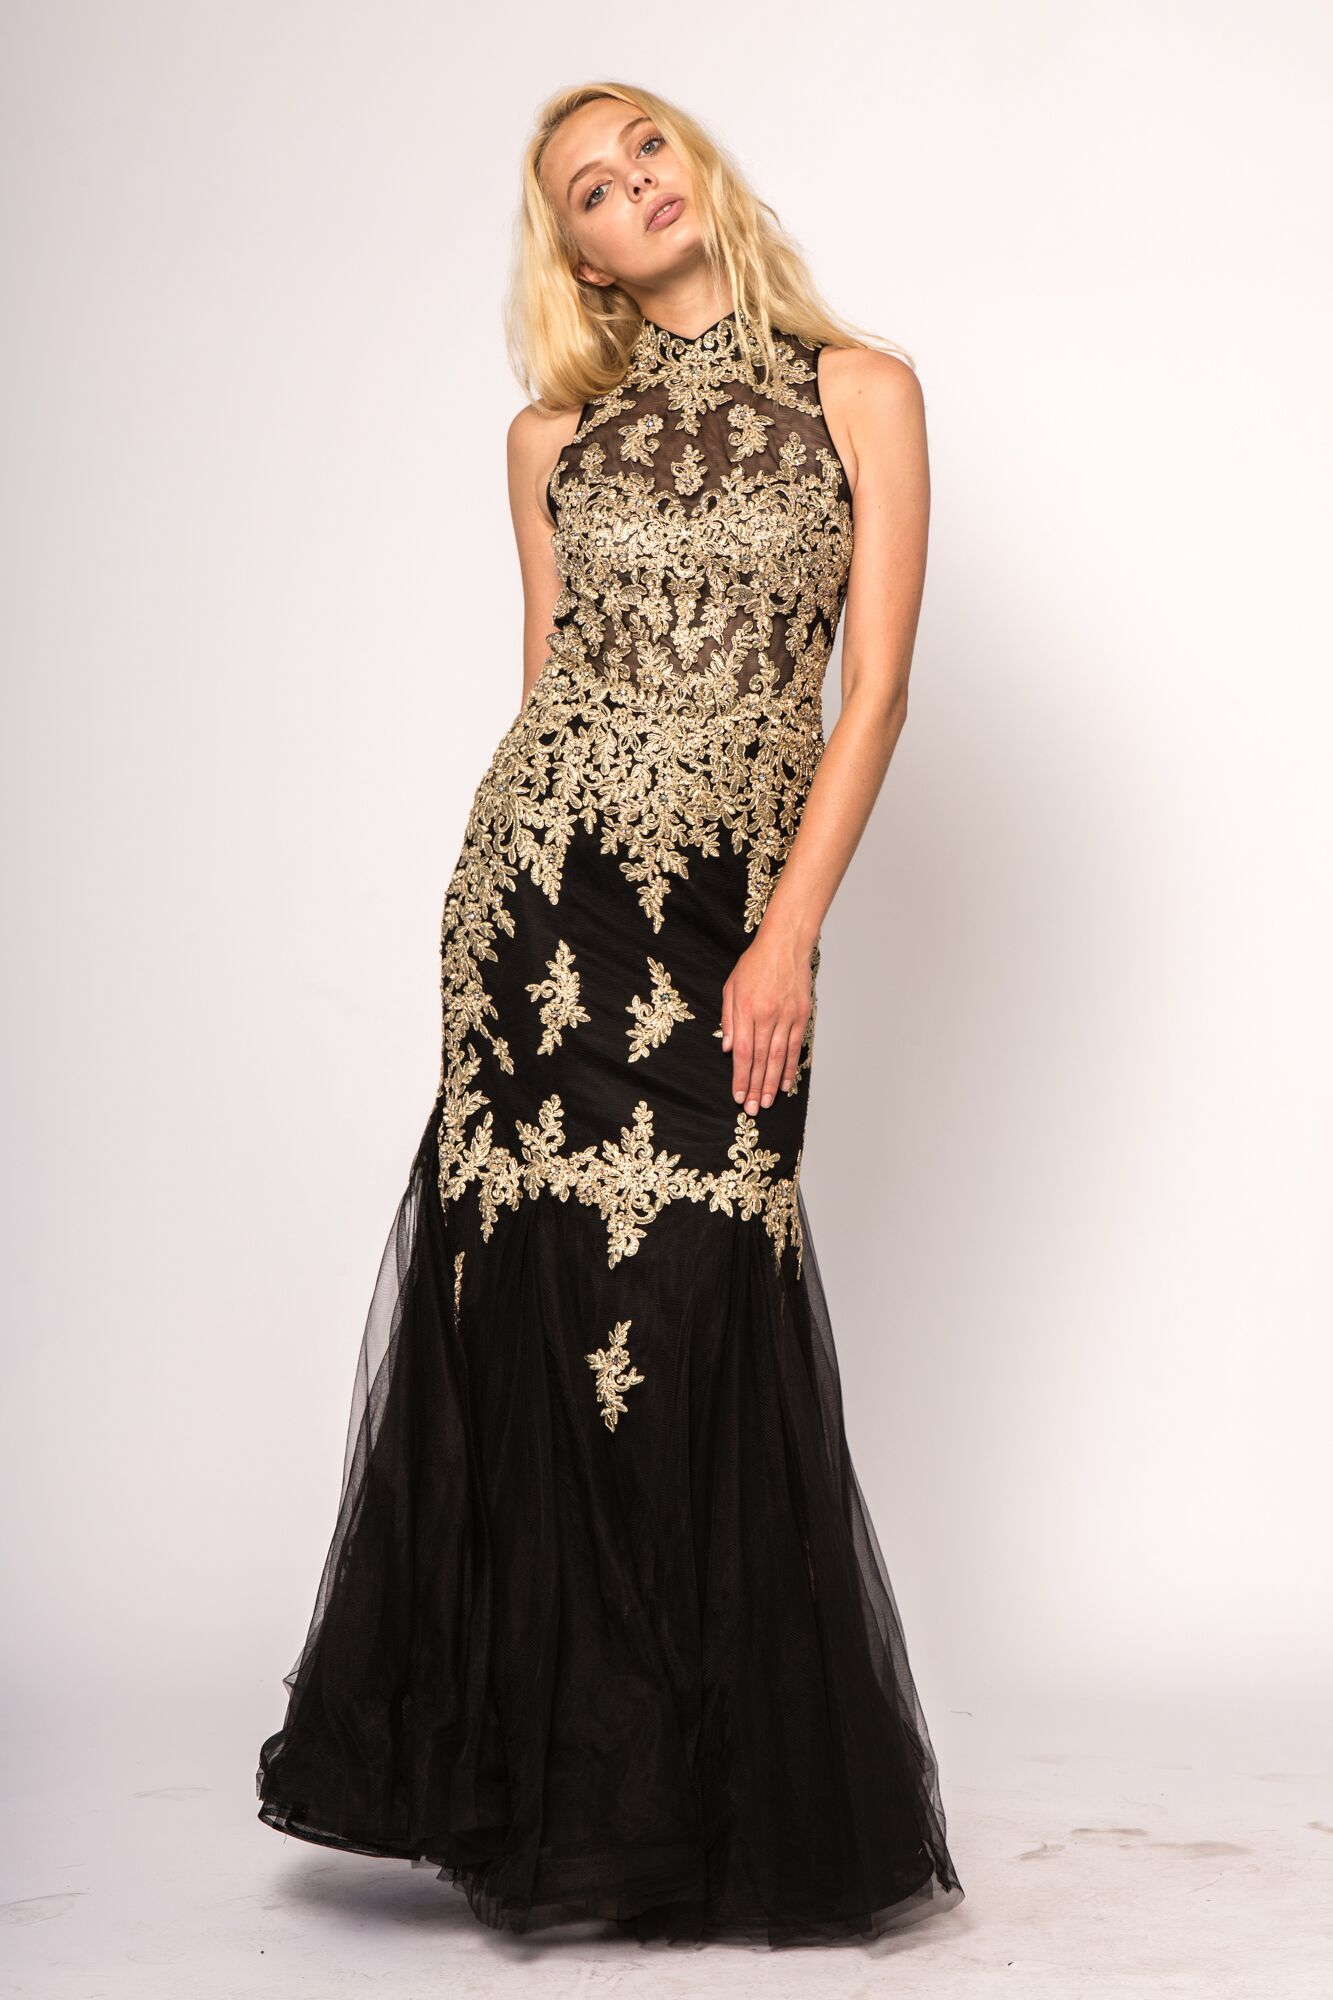 S S18 Elizabeth K Collection By Gls Apparel Queen Black And Gold 2018 Prom Dress Red Prom Dress Long Dresses Prom Dresses [ 2000 x 1333 Pixel ]